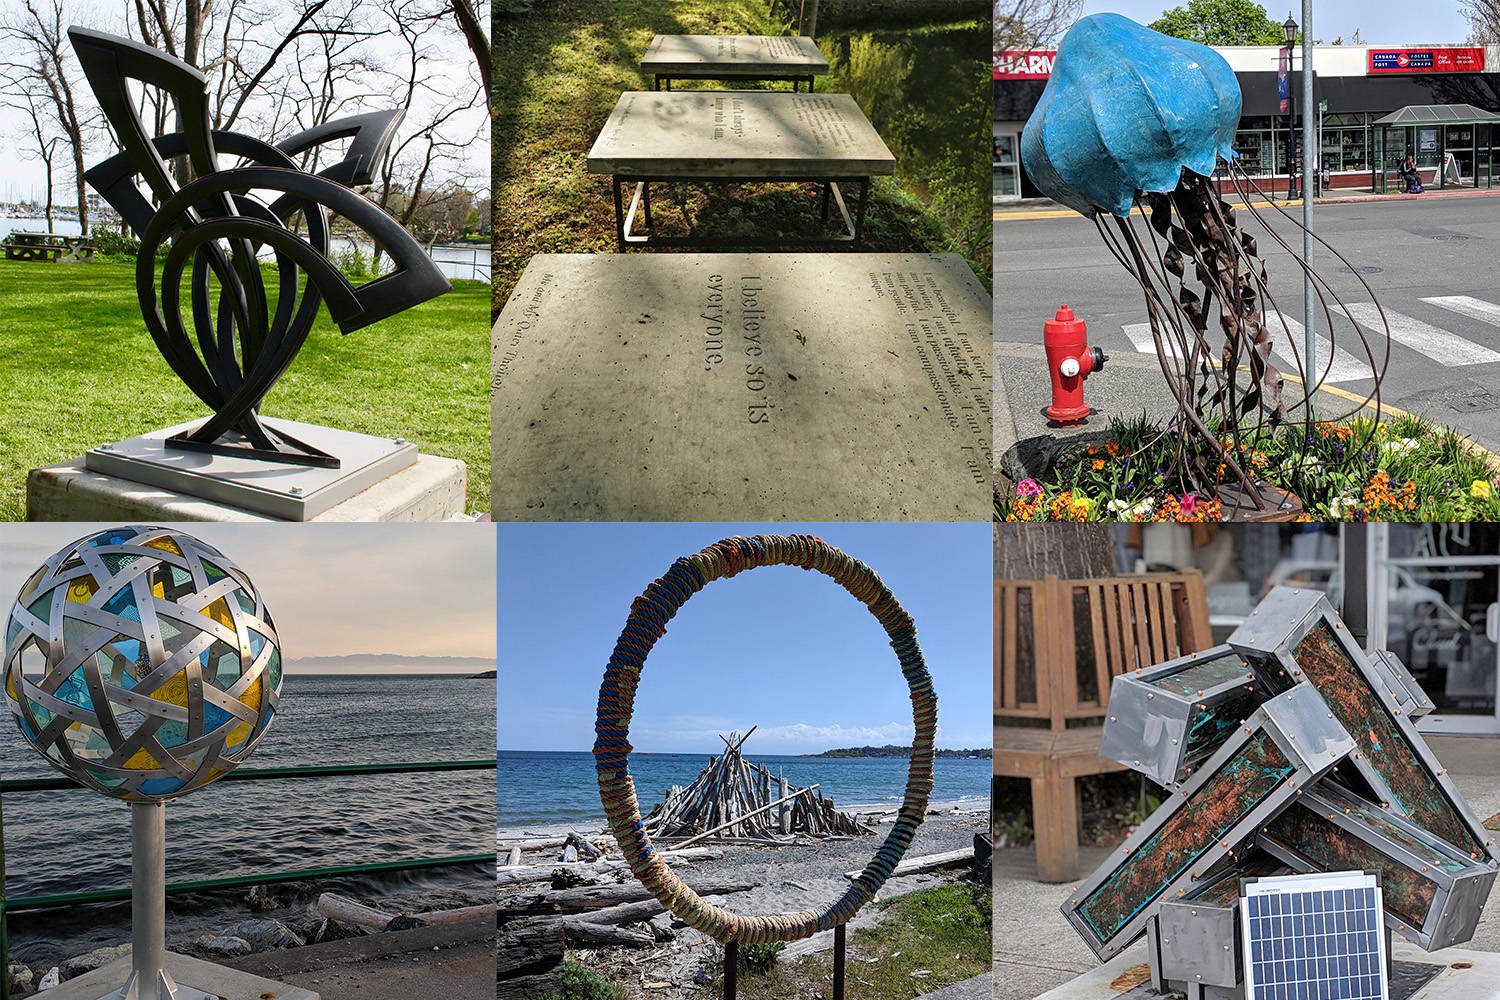 Two of the 2019 ArtsAlive sculptures on display in Oak Bay. Jelly, top right, by Nathan Smith, and Portal, bottom centre, by Heather Passmore, have been donated to Oak Bay. (District of Oak Bay Photos)